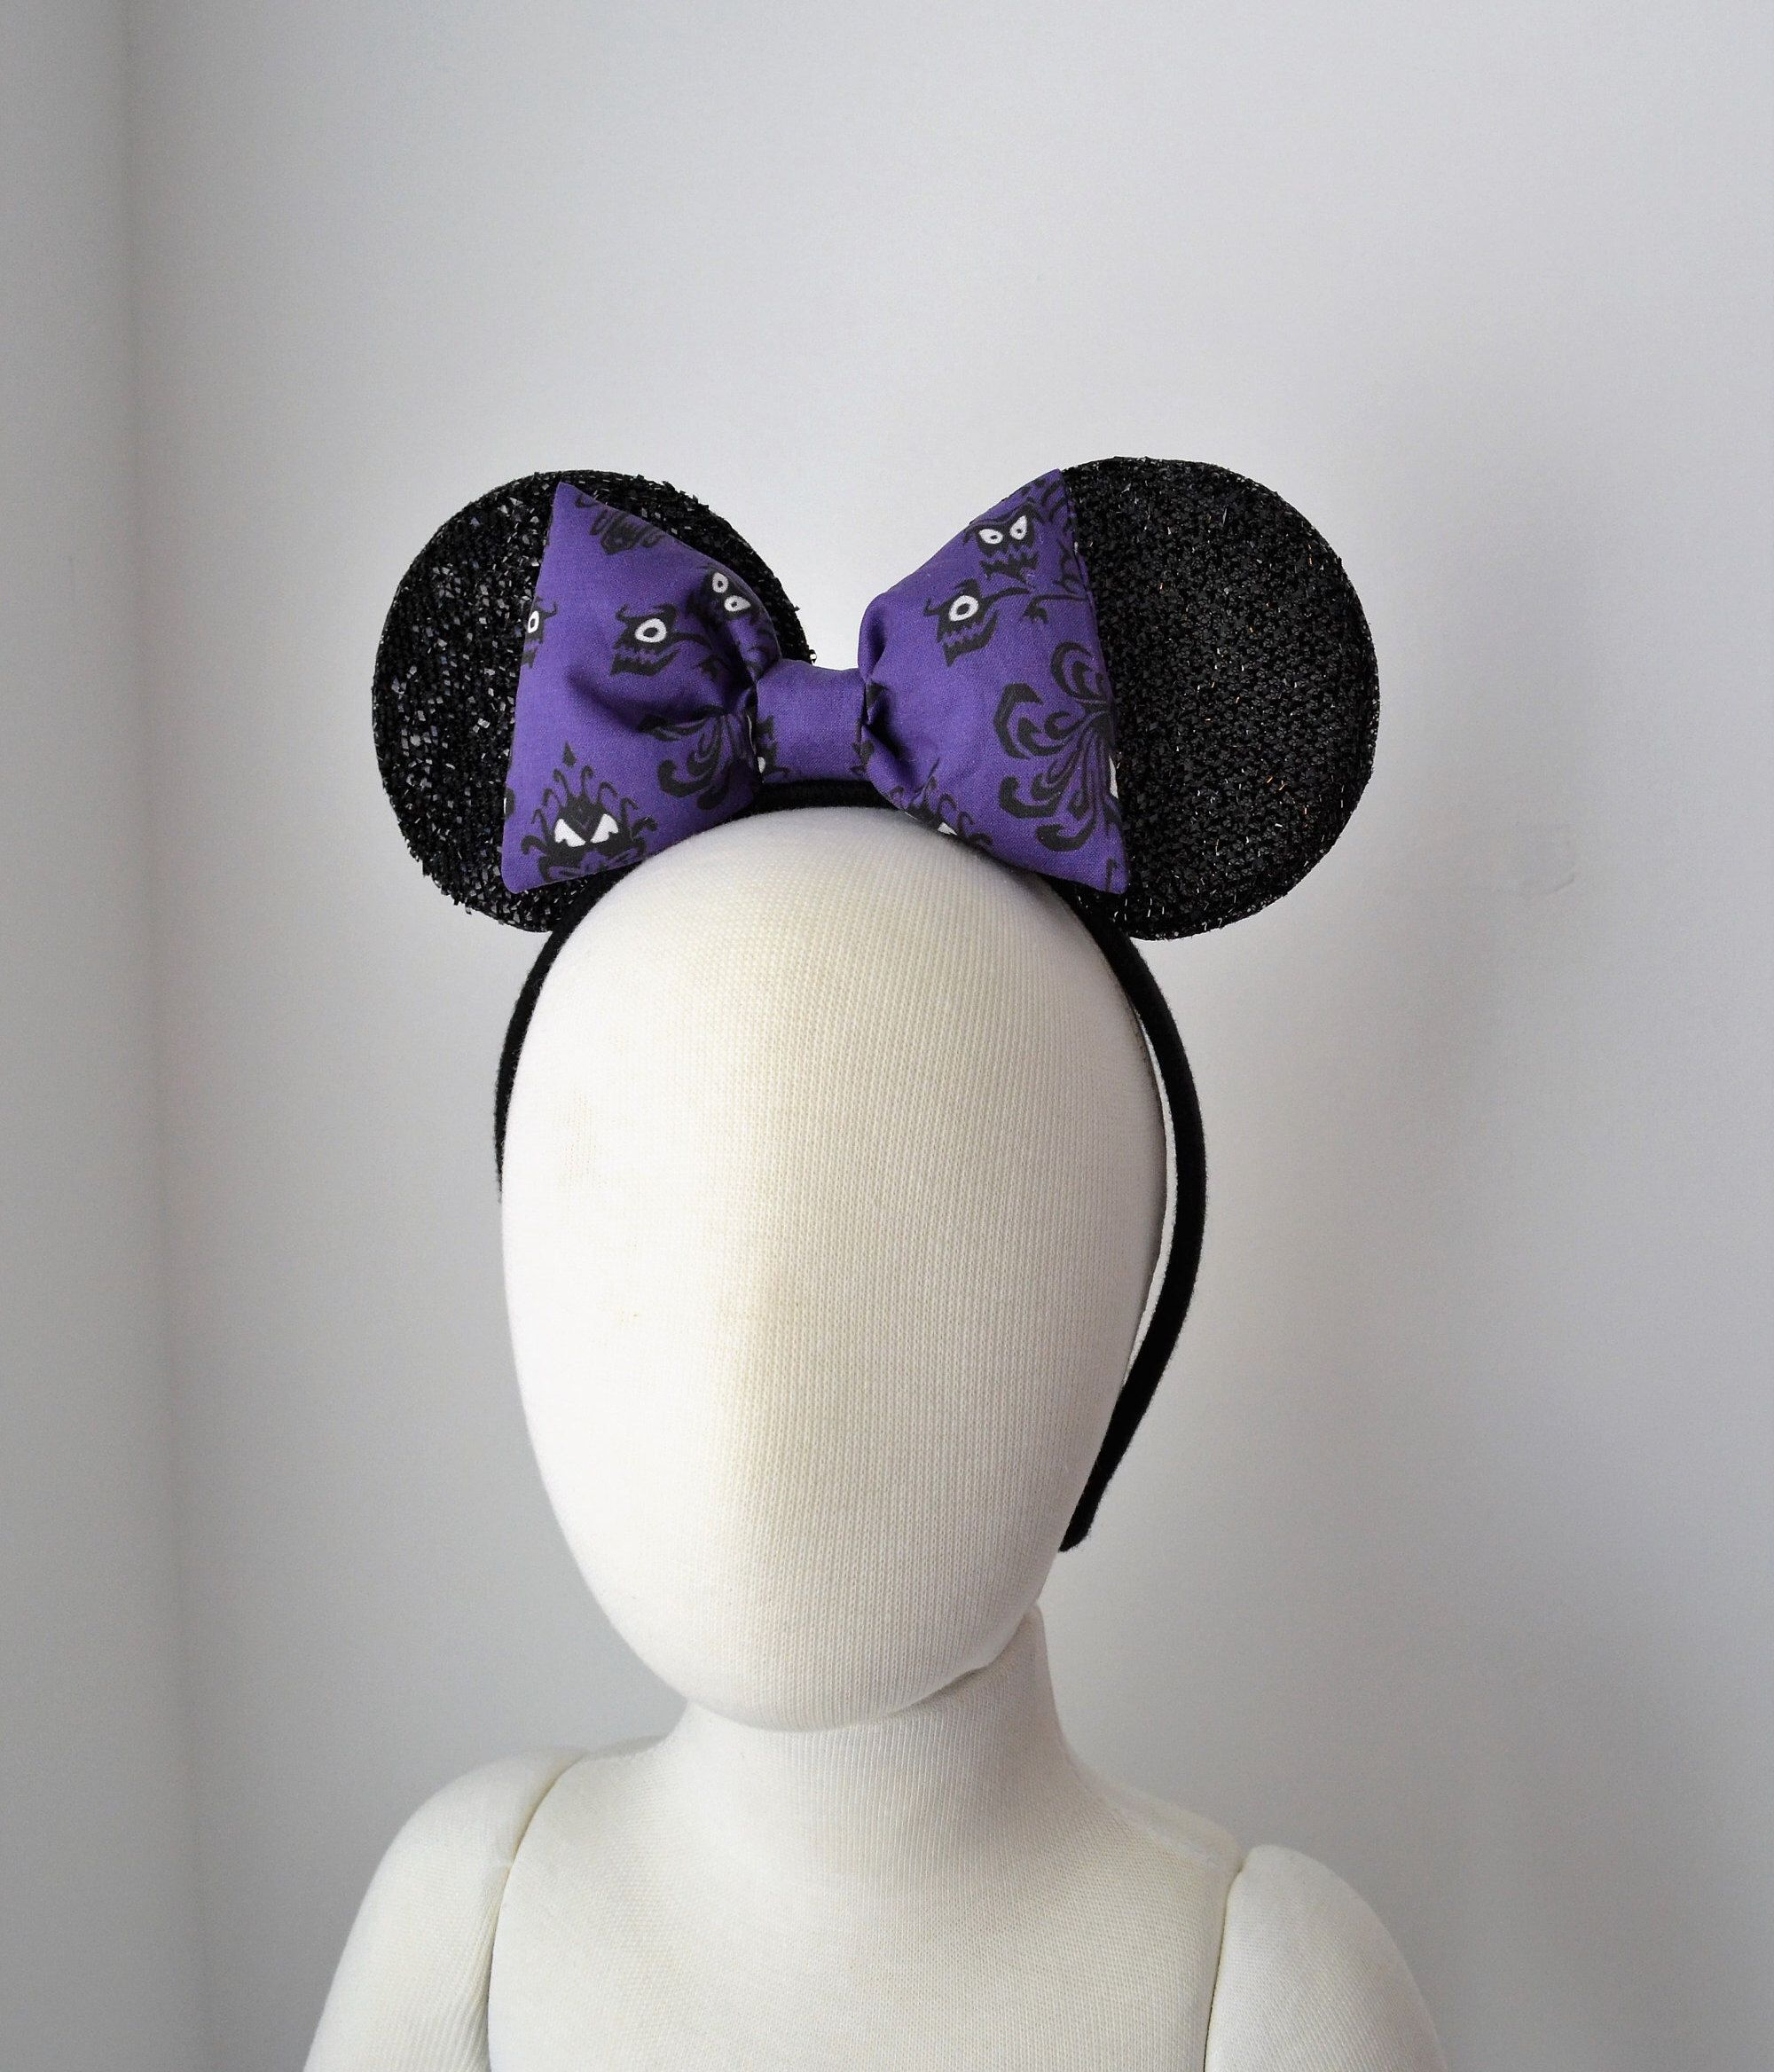 Haunted Mansion Minnie Mouse Ears, Haunted Mansion Disney